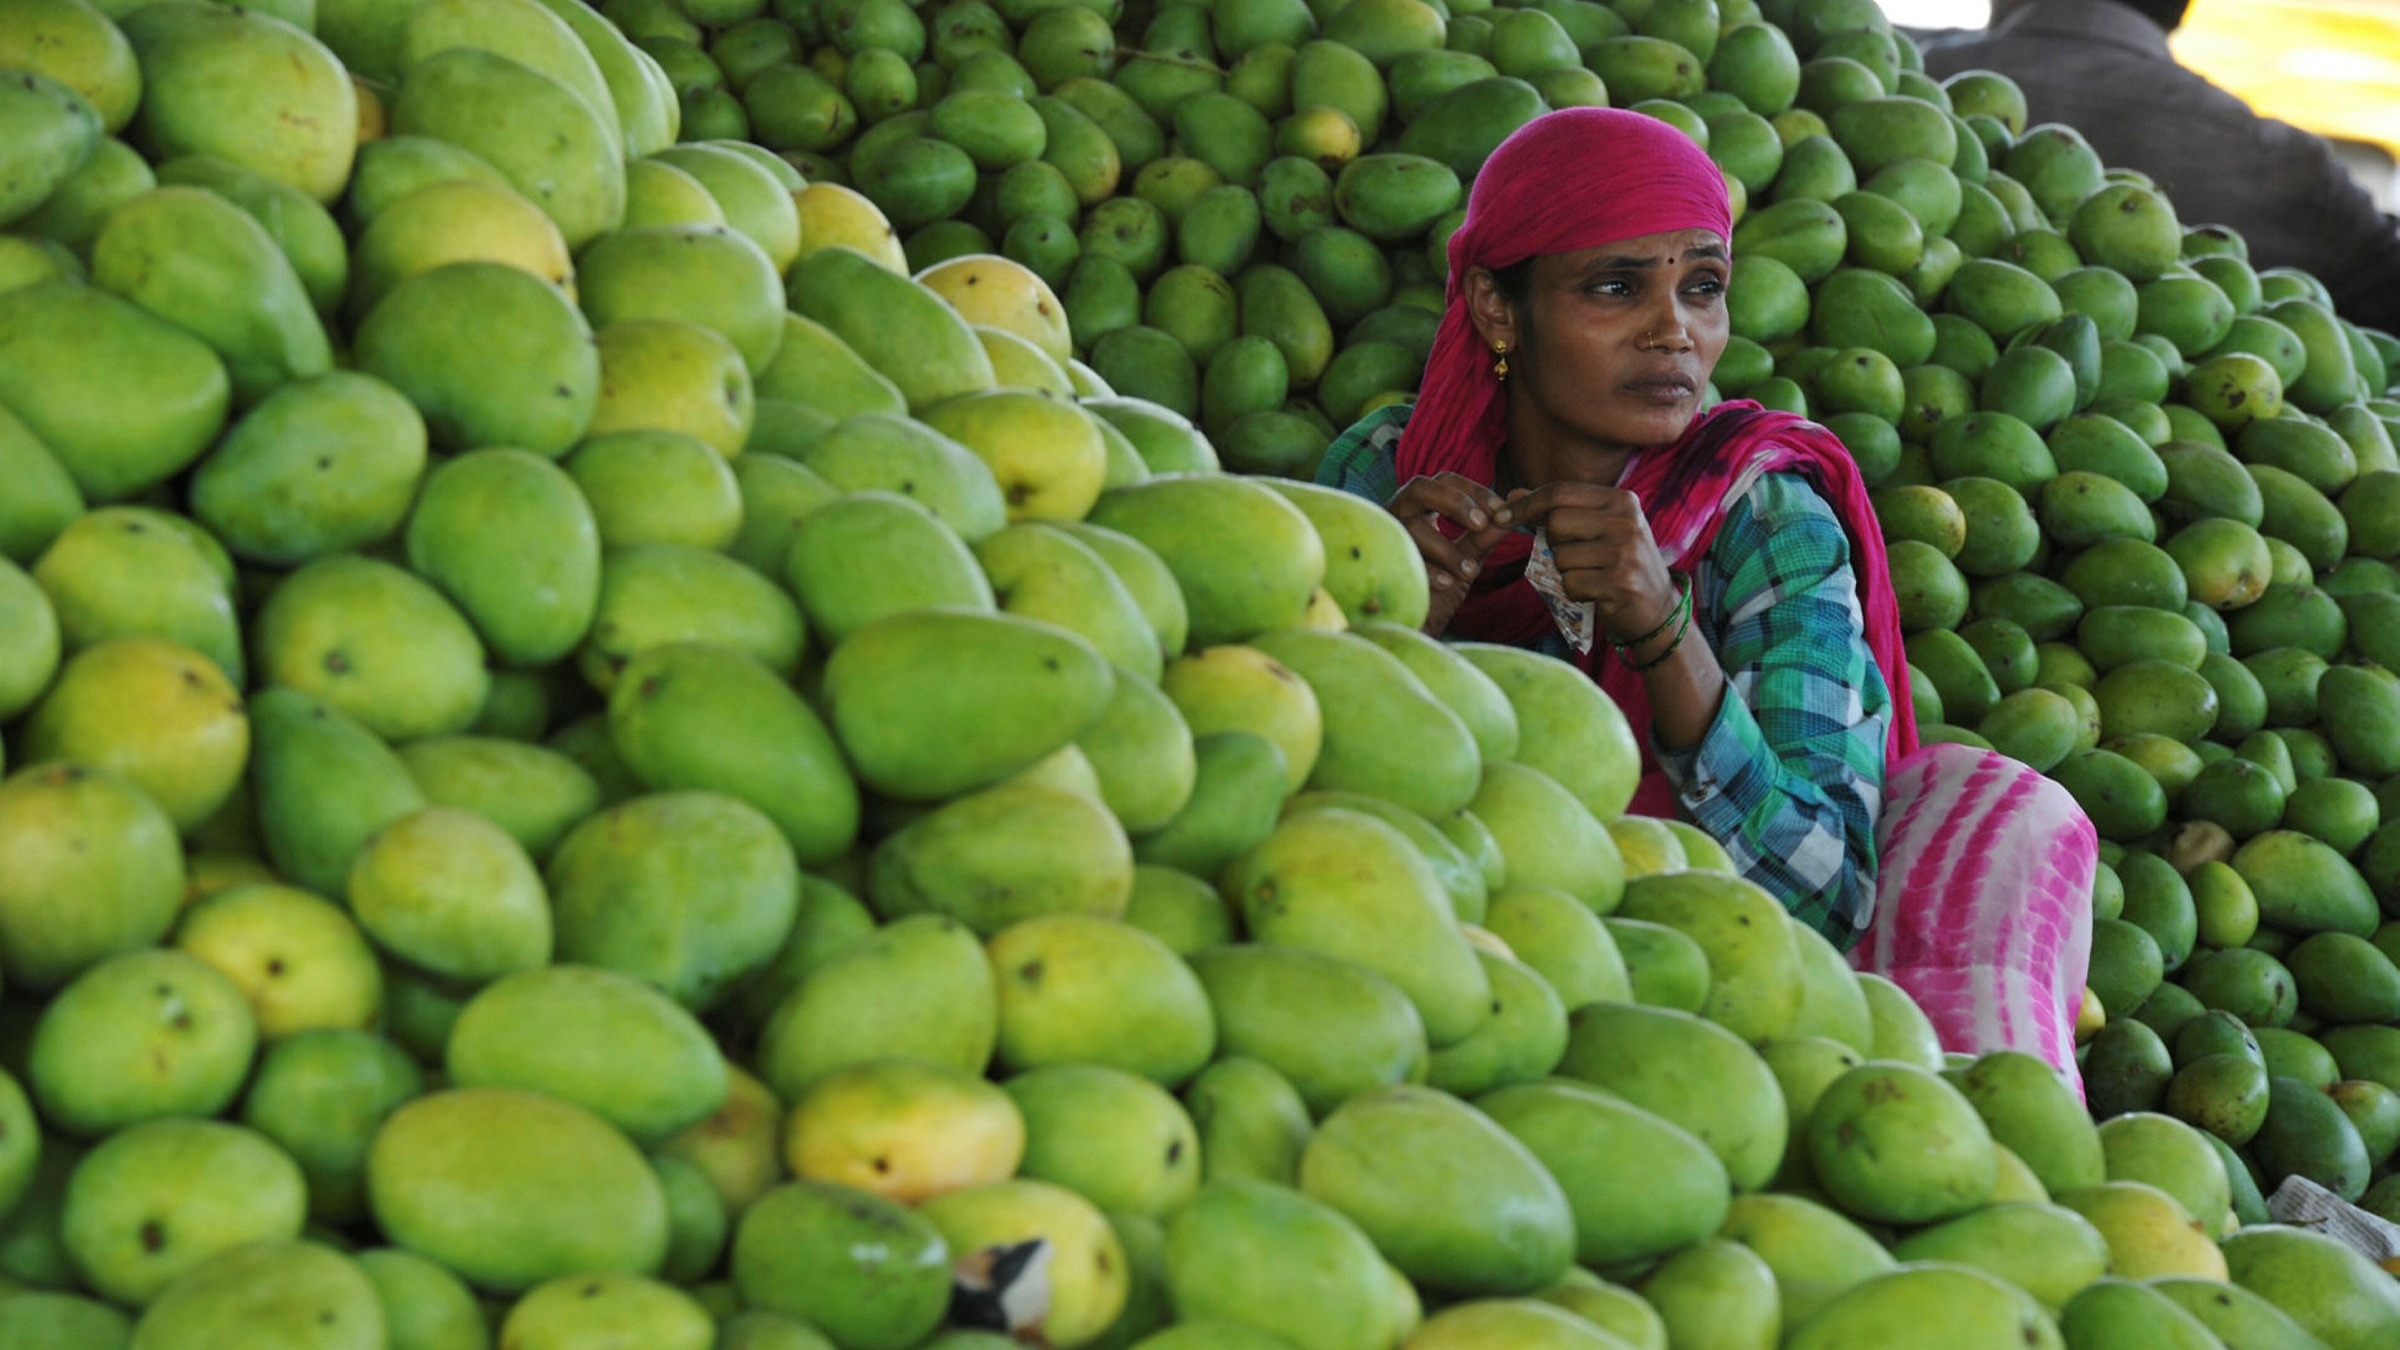 India S Lockdown Puts Squeeze On Mango Harvest Financial Times